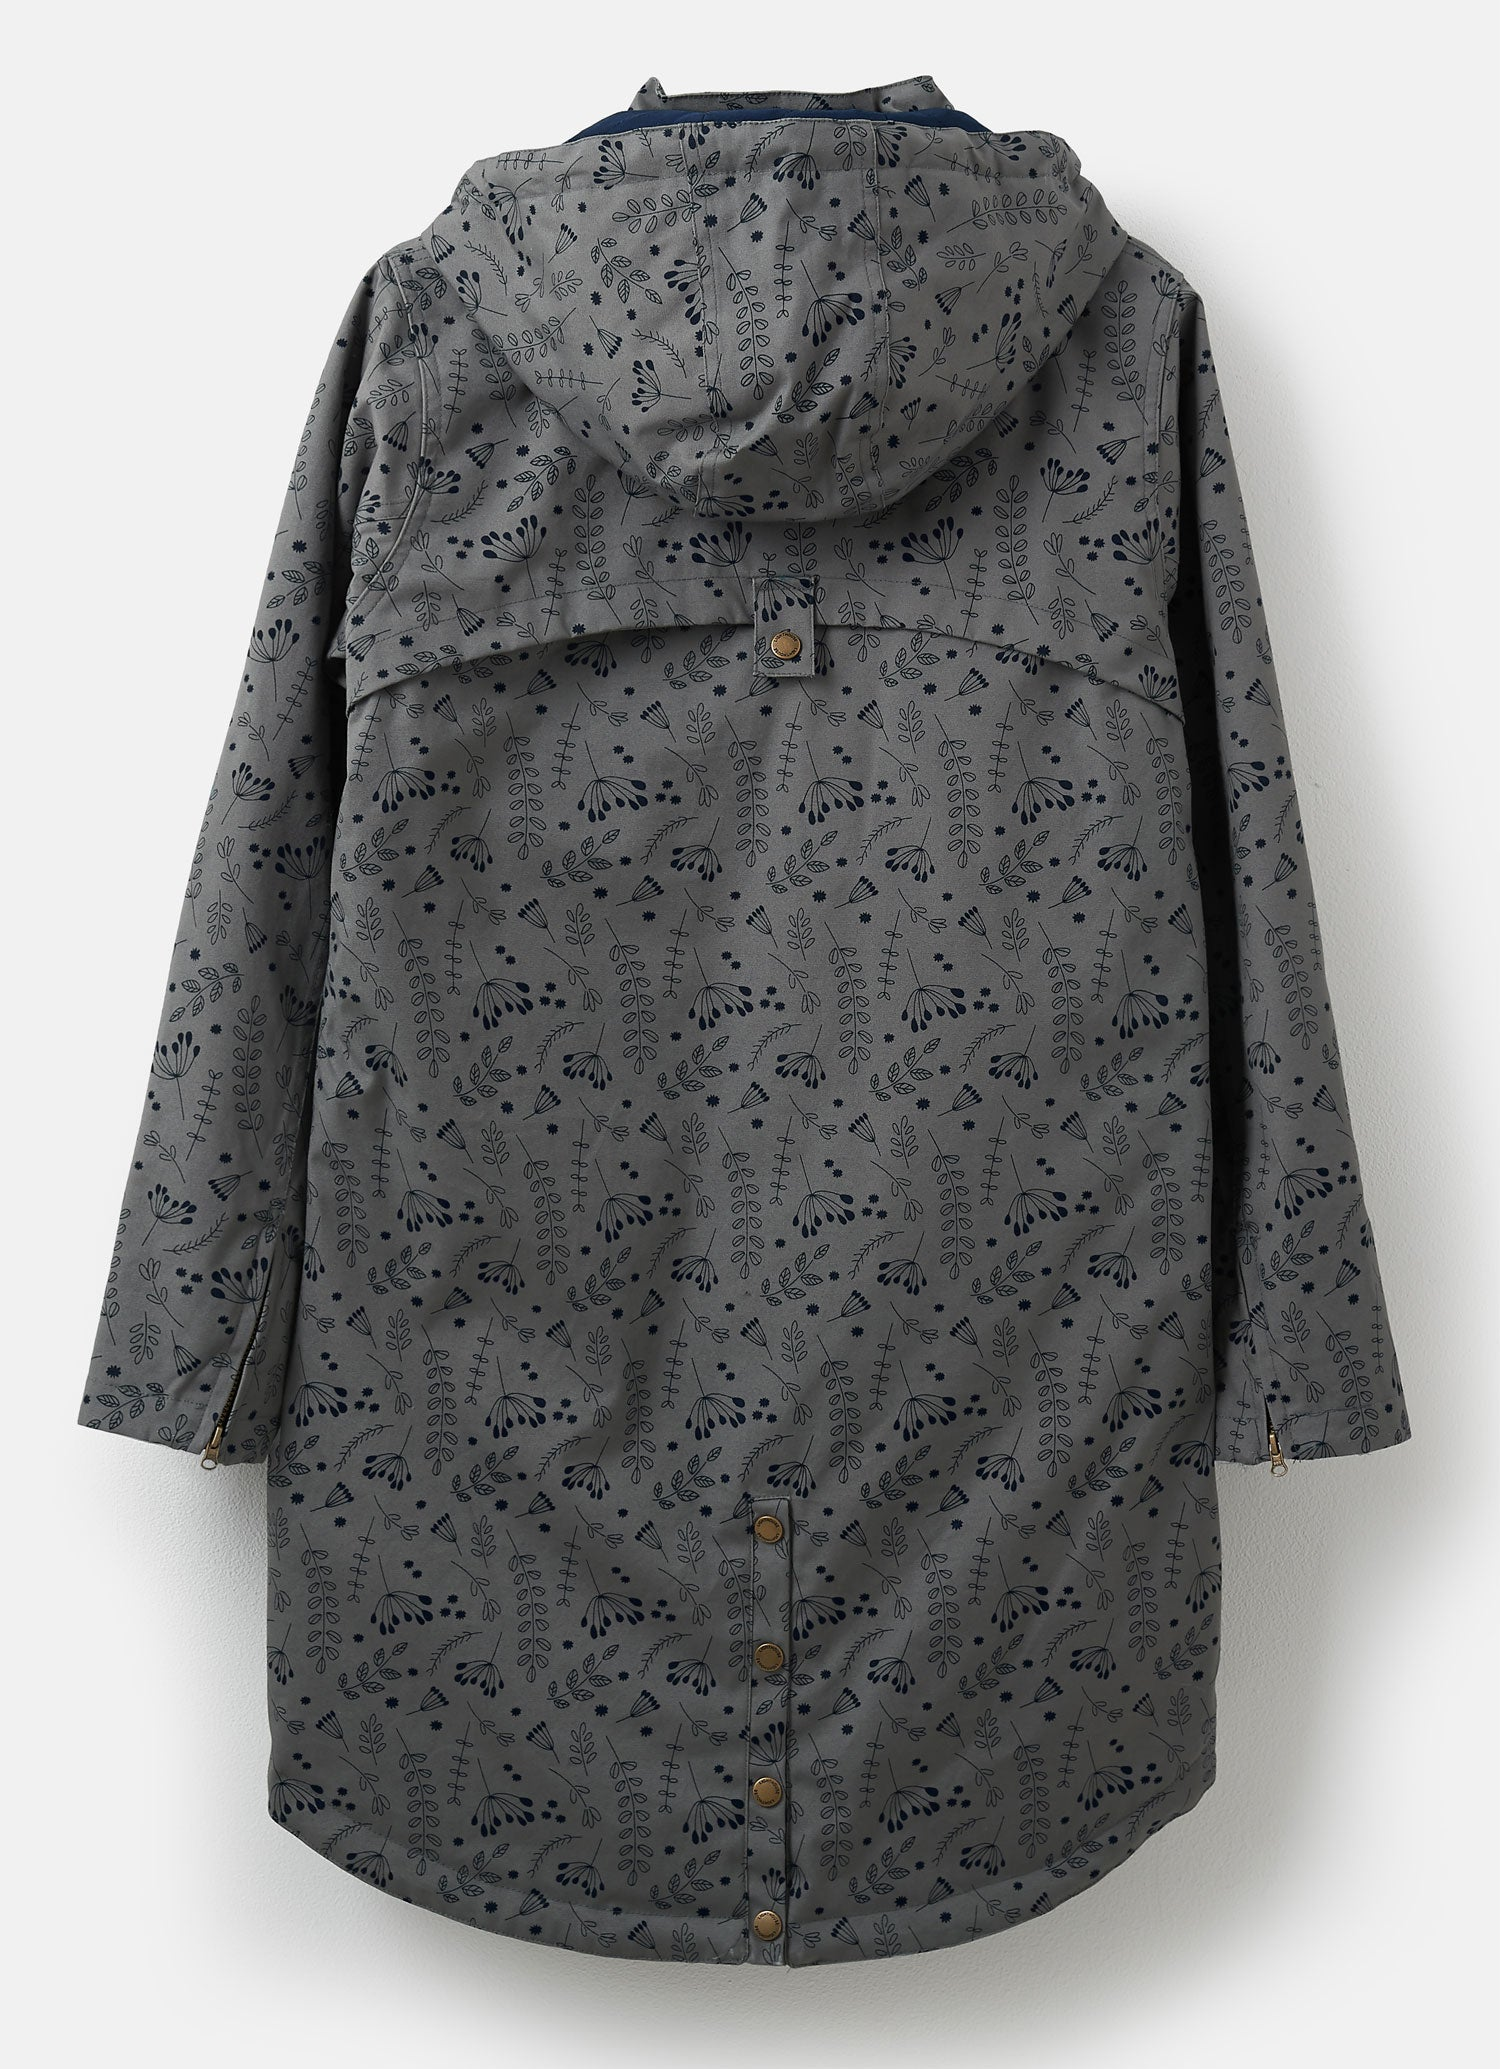 Back View Lighthouse Alanna Waterproof Parka Jacket | Grey Urban Print